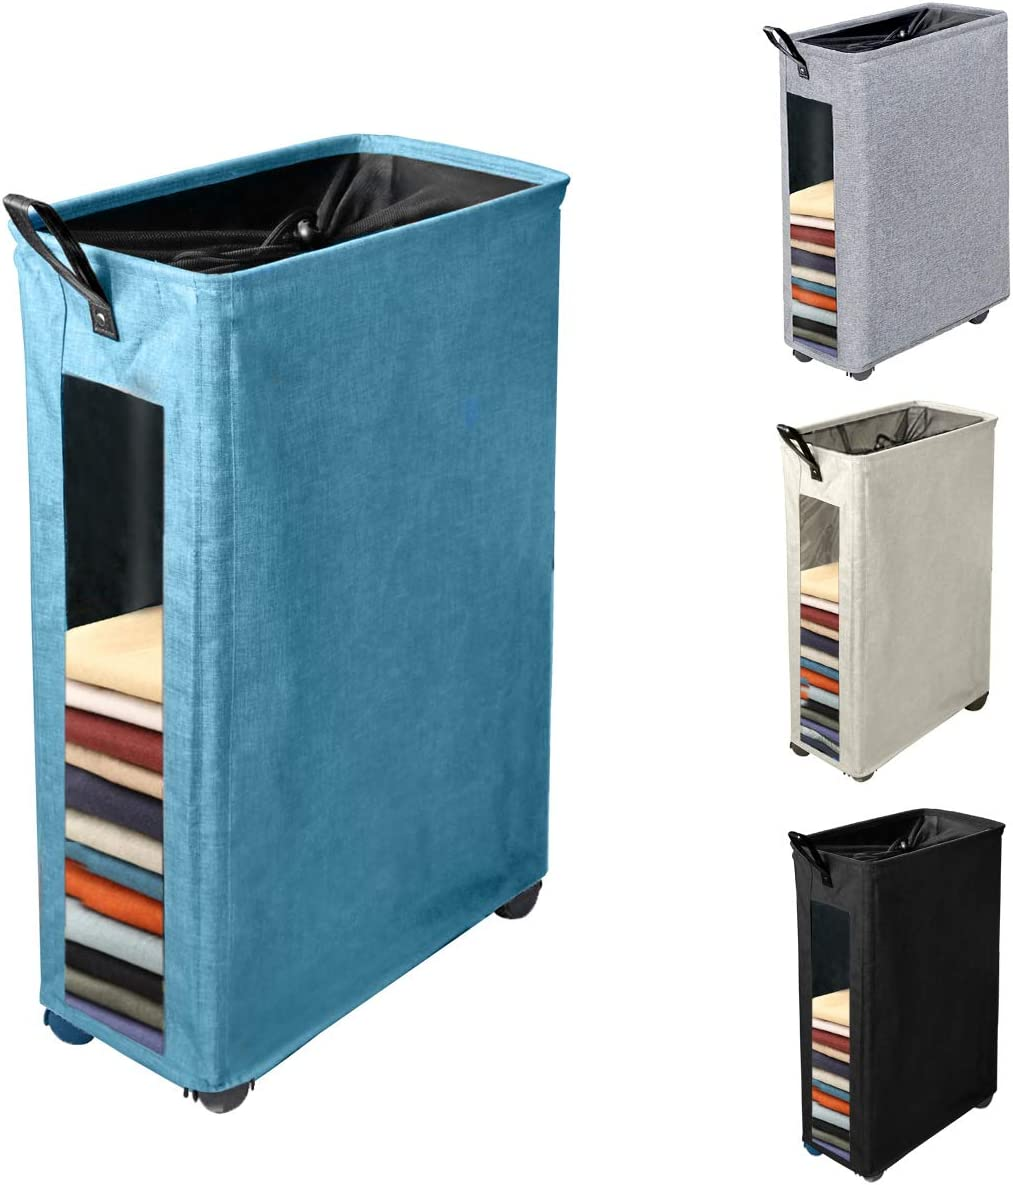 Henkelion Rolling Laundry Hamper, Collapsible Laundry Basket with Wheels and Handles, Tall Large Slim Narrow Foldable Storage Corner Bin with Visible Clear Window for Dirty Clothes - 27 Inches - Blue